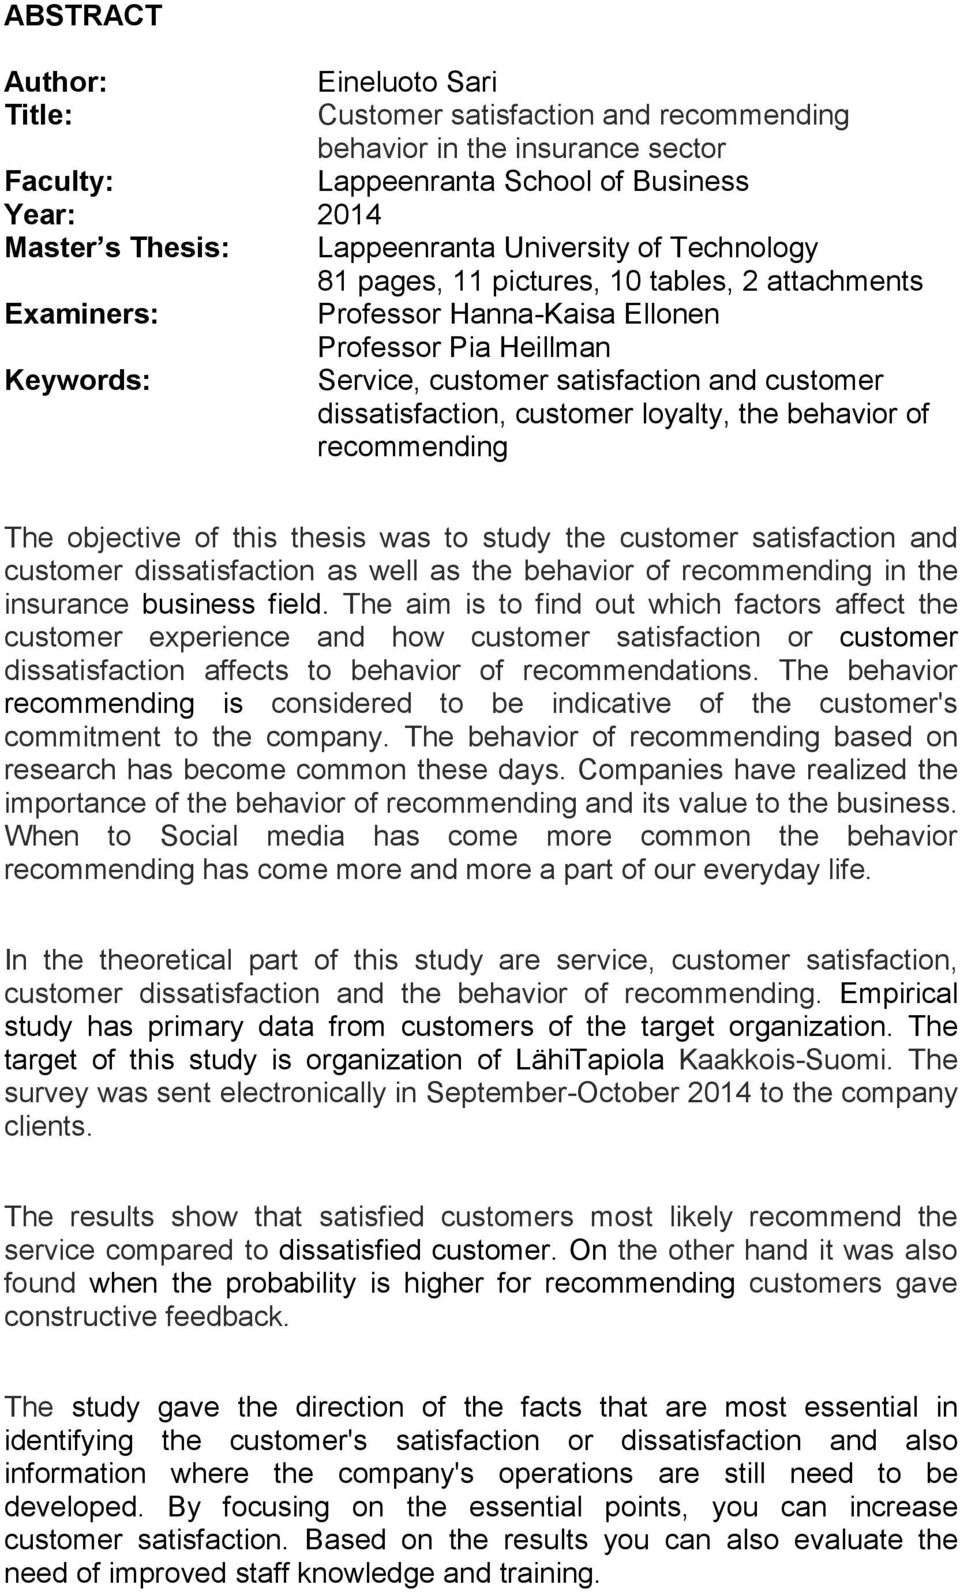 dissatisfaction, customer loyalty, the behavior of recommending The objective of this thesis was to study the customer satisfaction and customer dissatisfaction as well as the behavior of